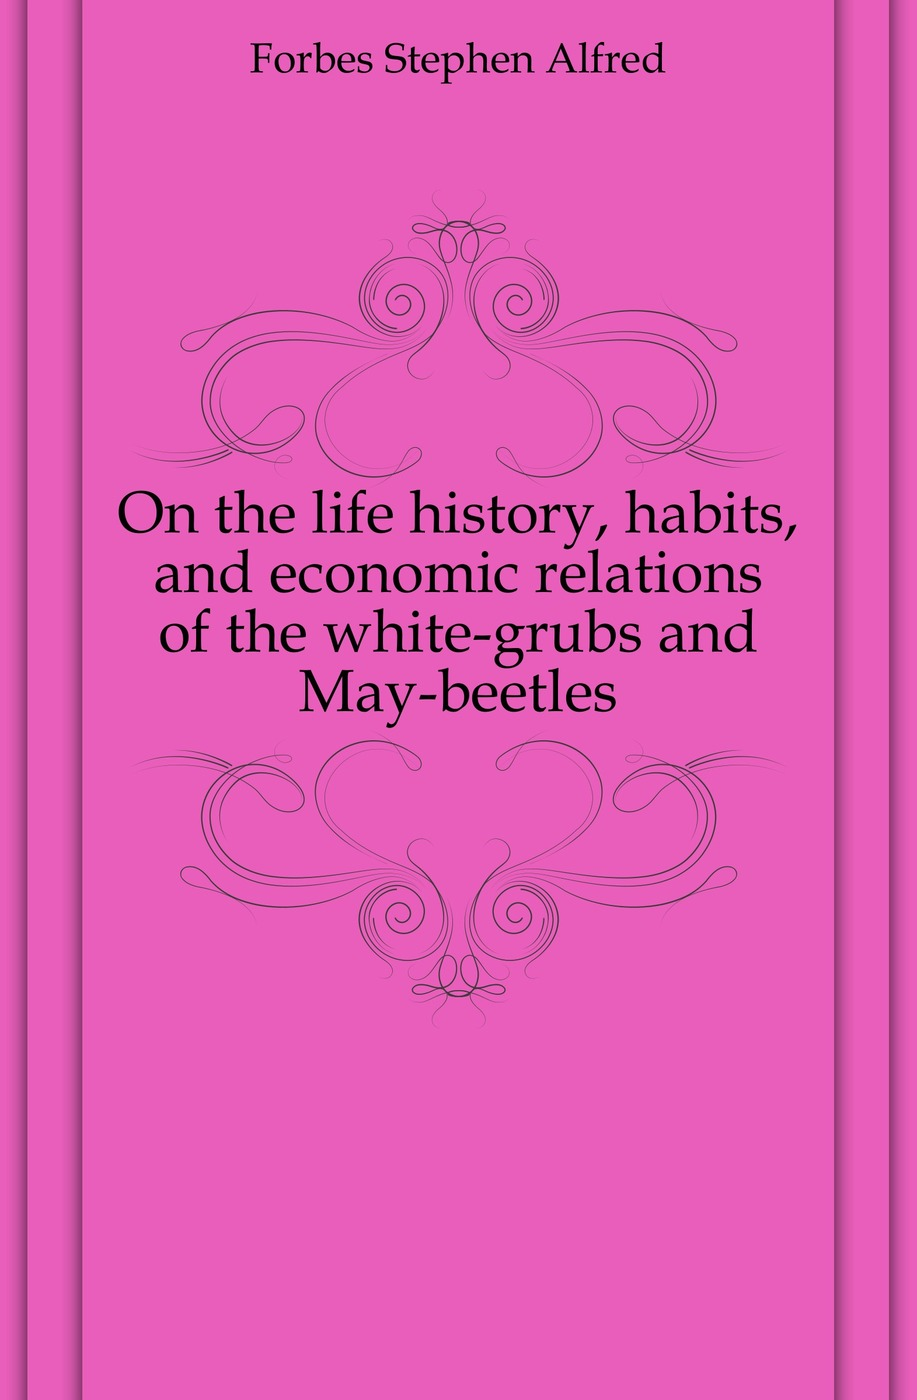 Forbes Stephen Alfred On the life history, habits, and economic relations of white-grubs May-beetles